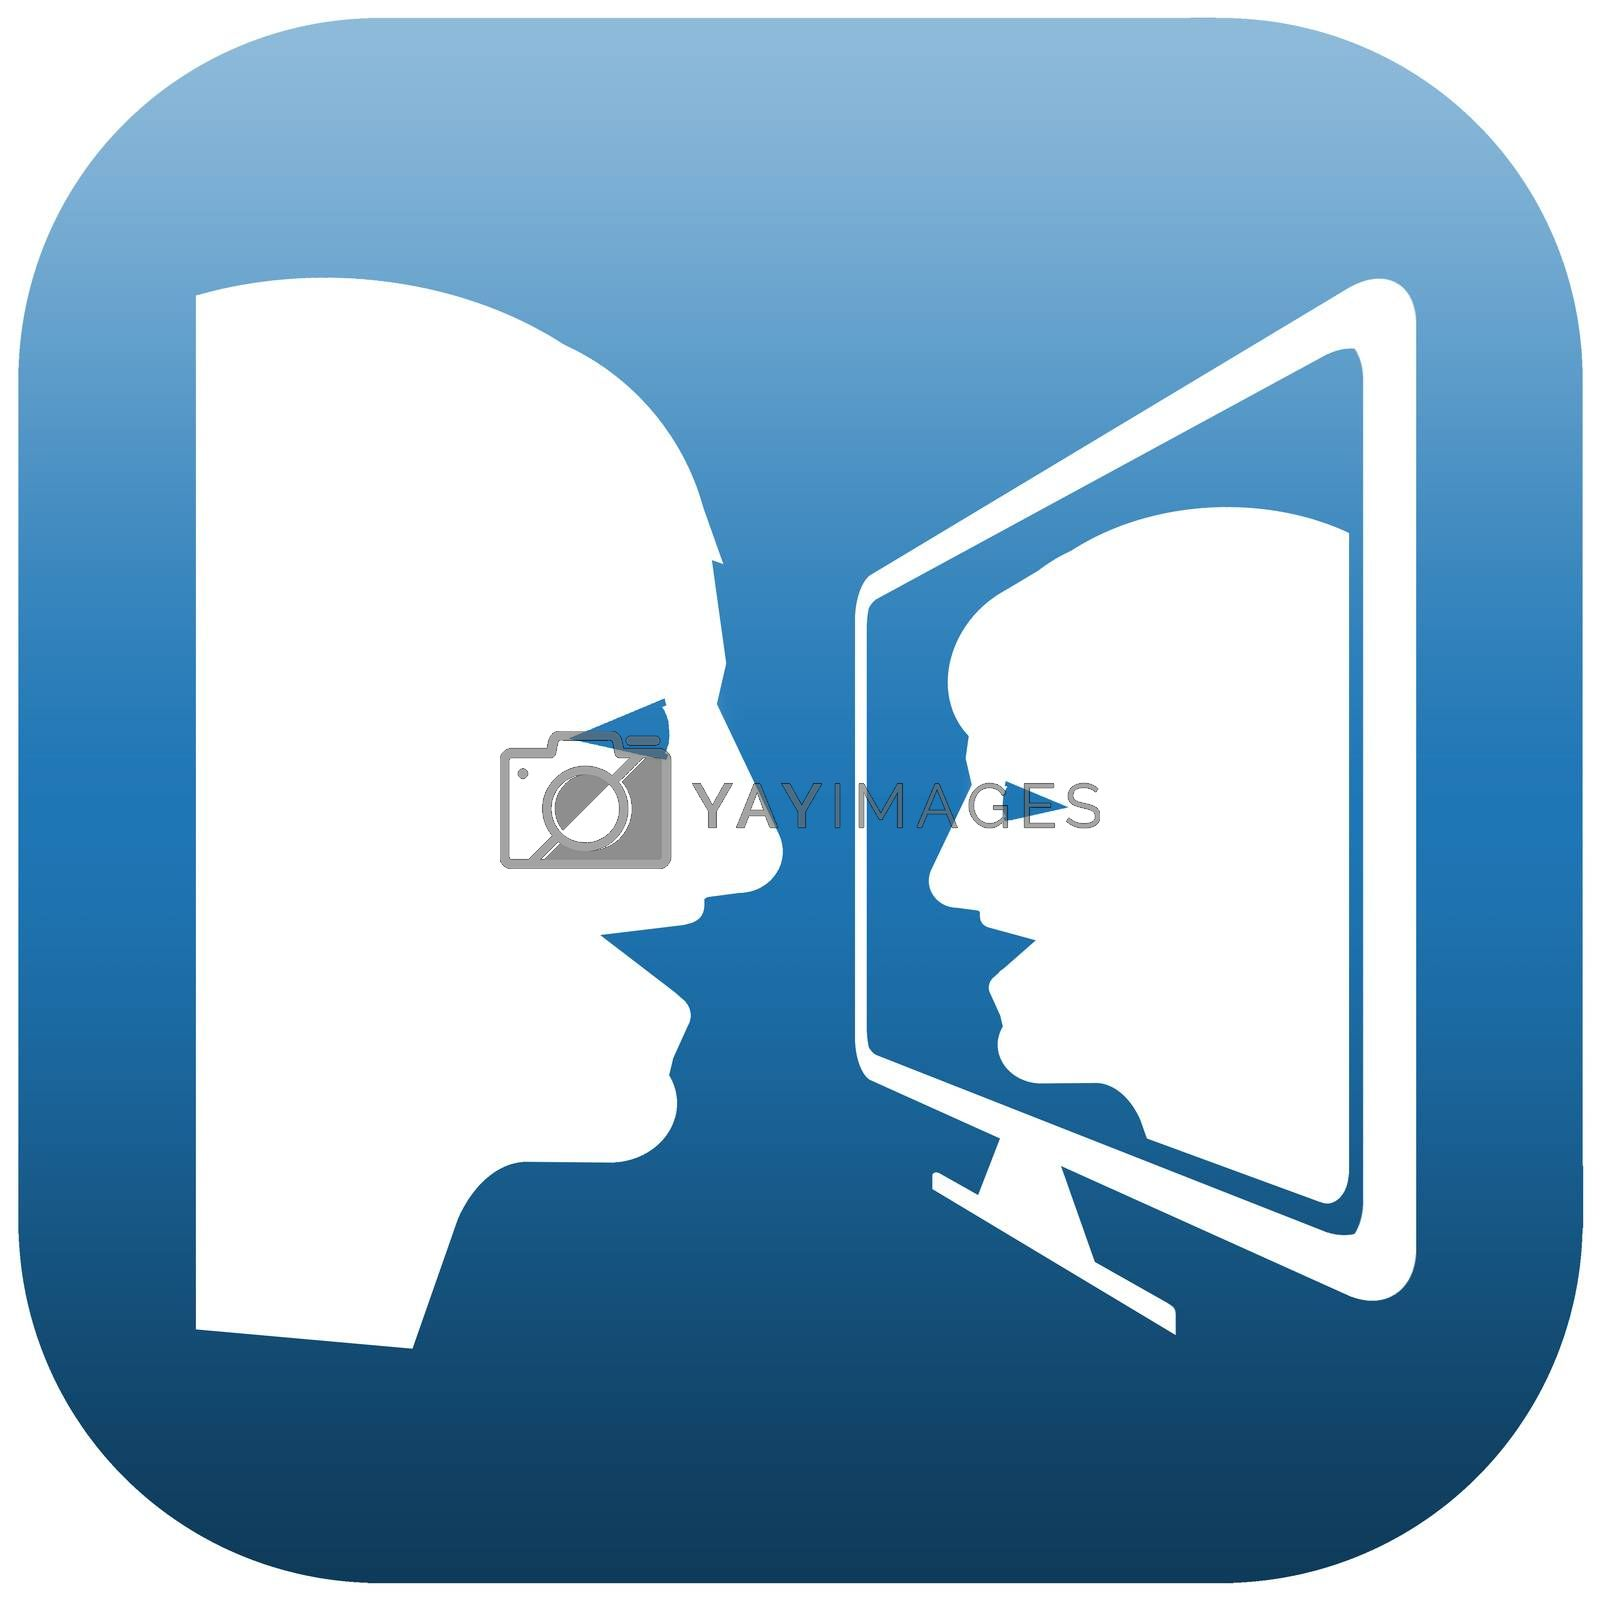 Blue and white icon illustration of two people doing chat on a screen